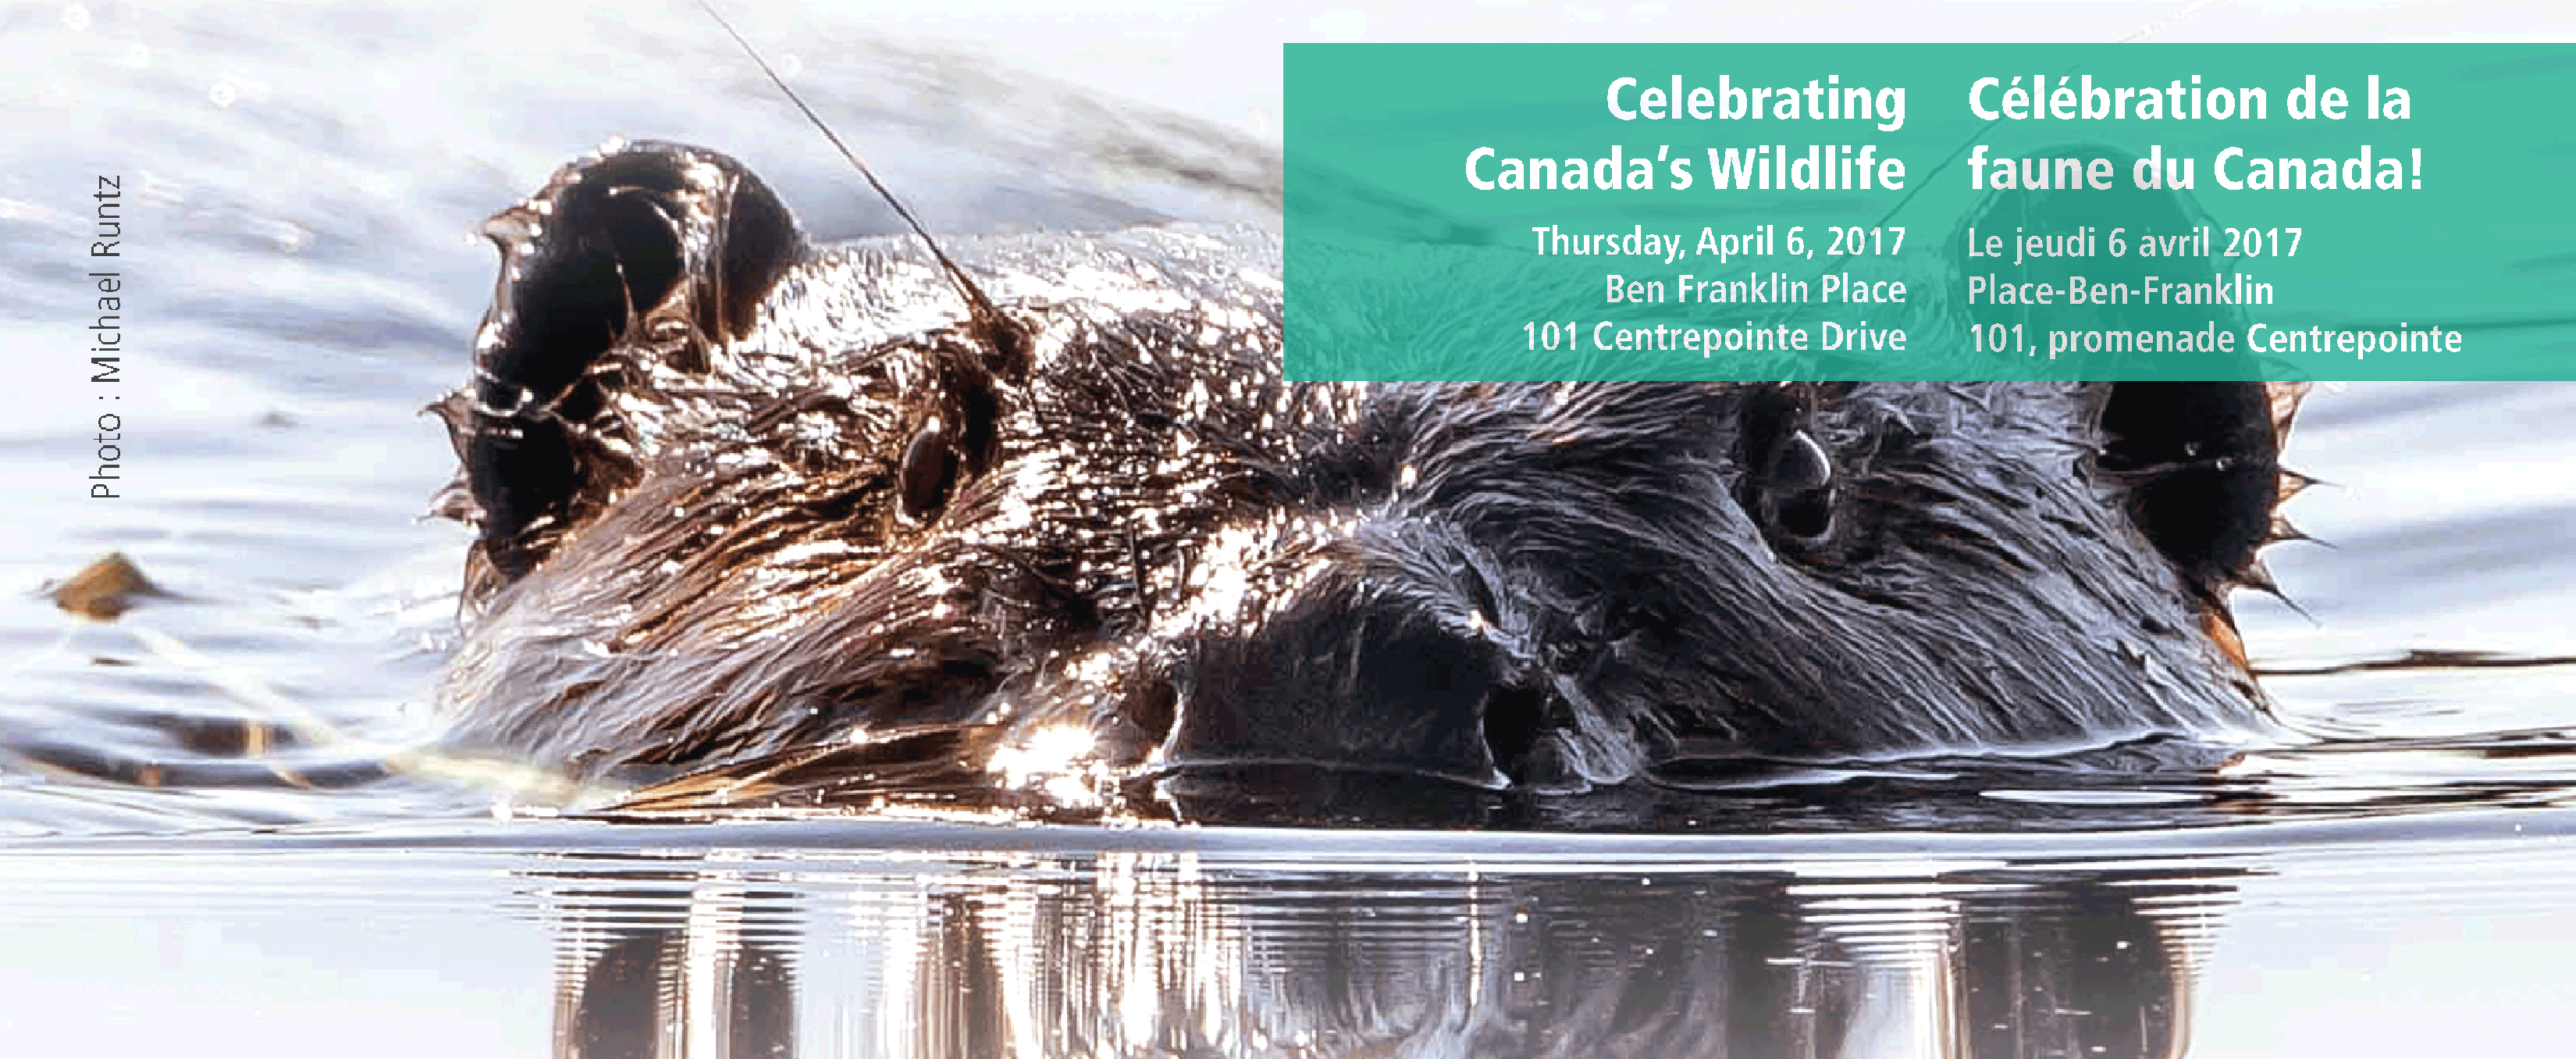 Wildlife Speaker Series A Celebration of Canada's Wildlife - April 6, 2017